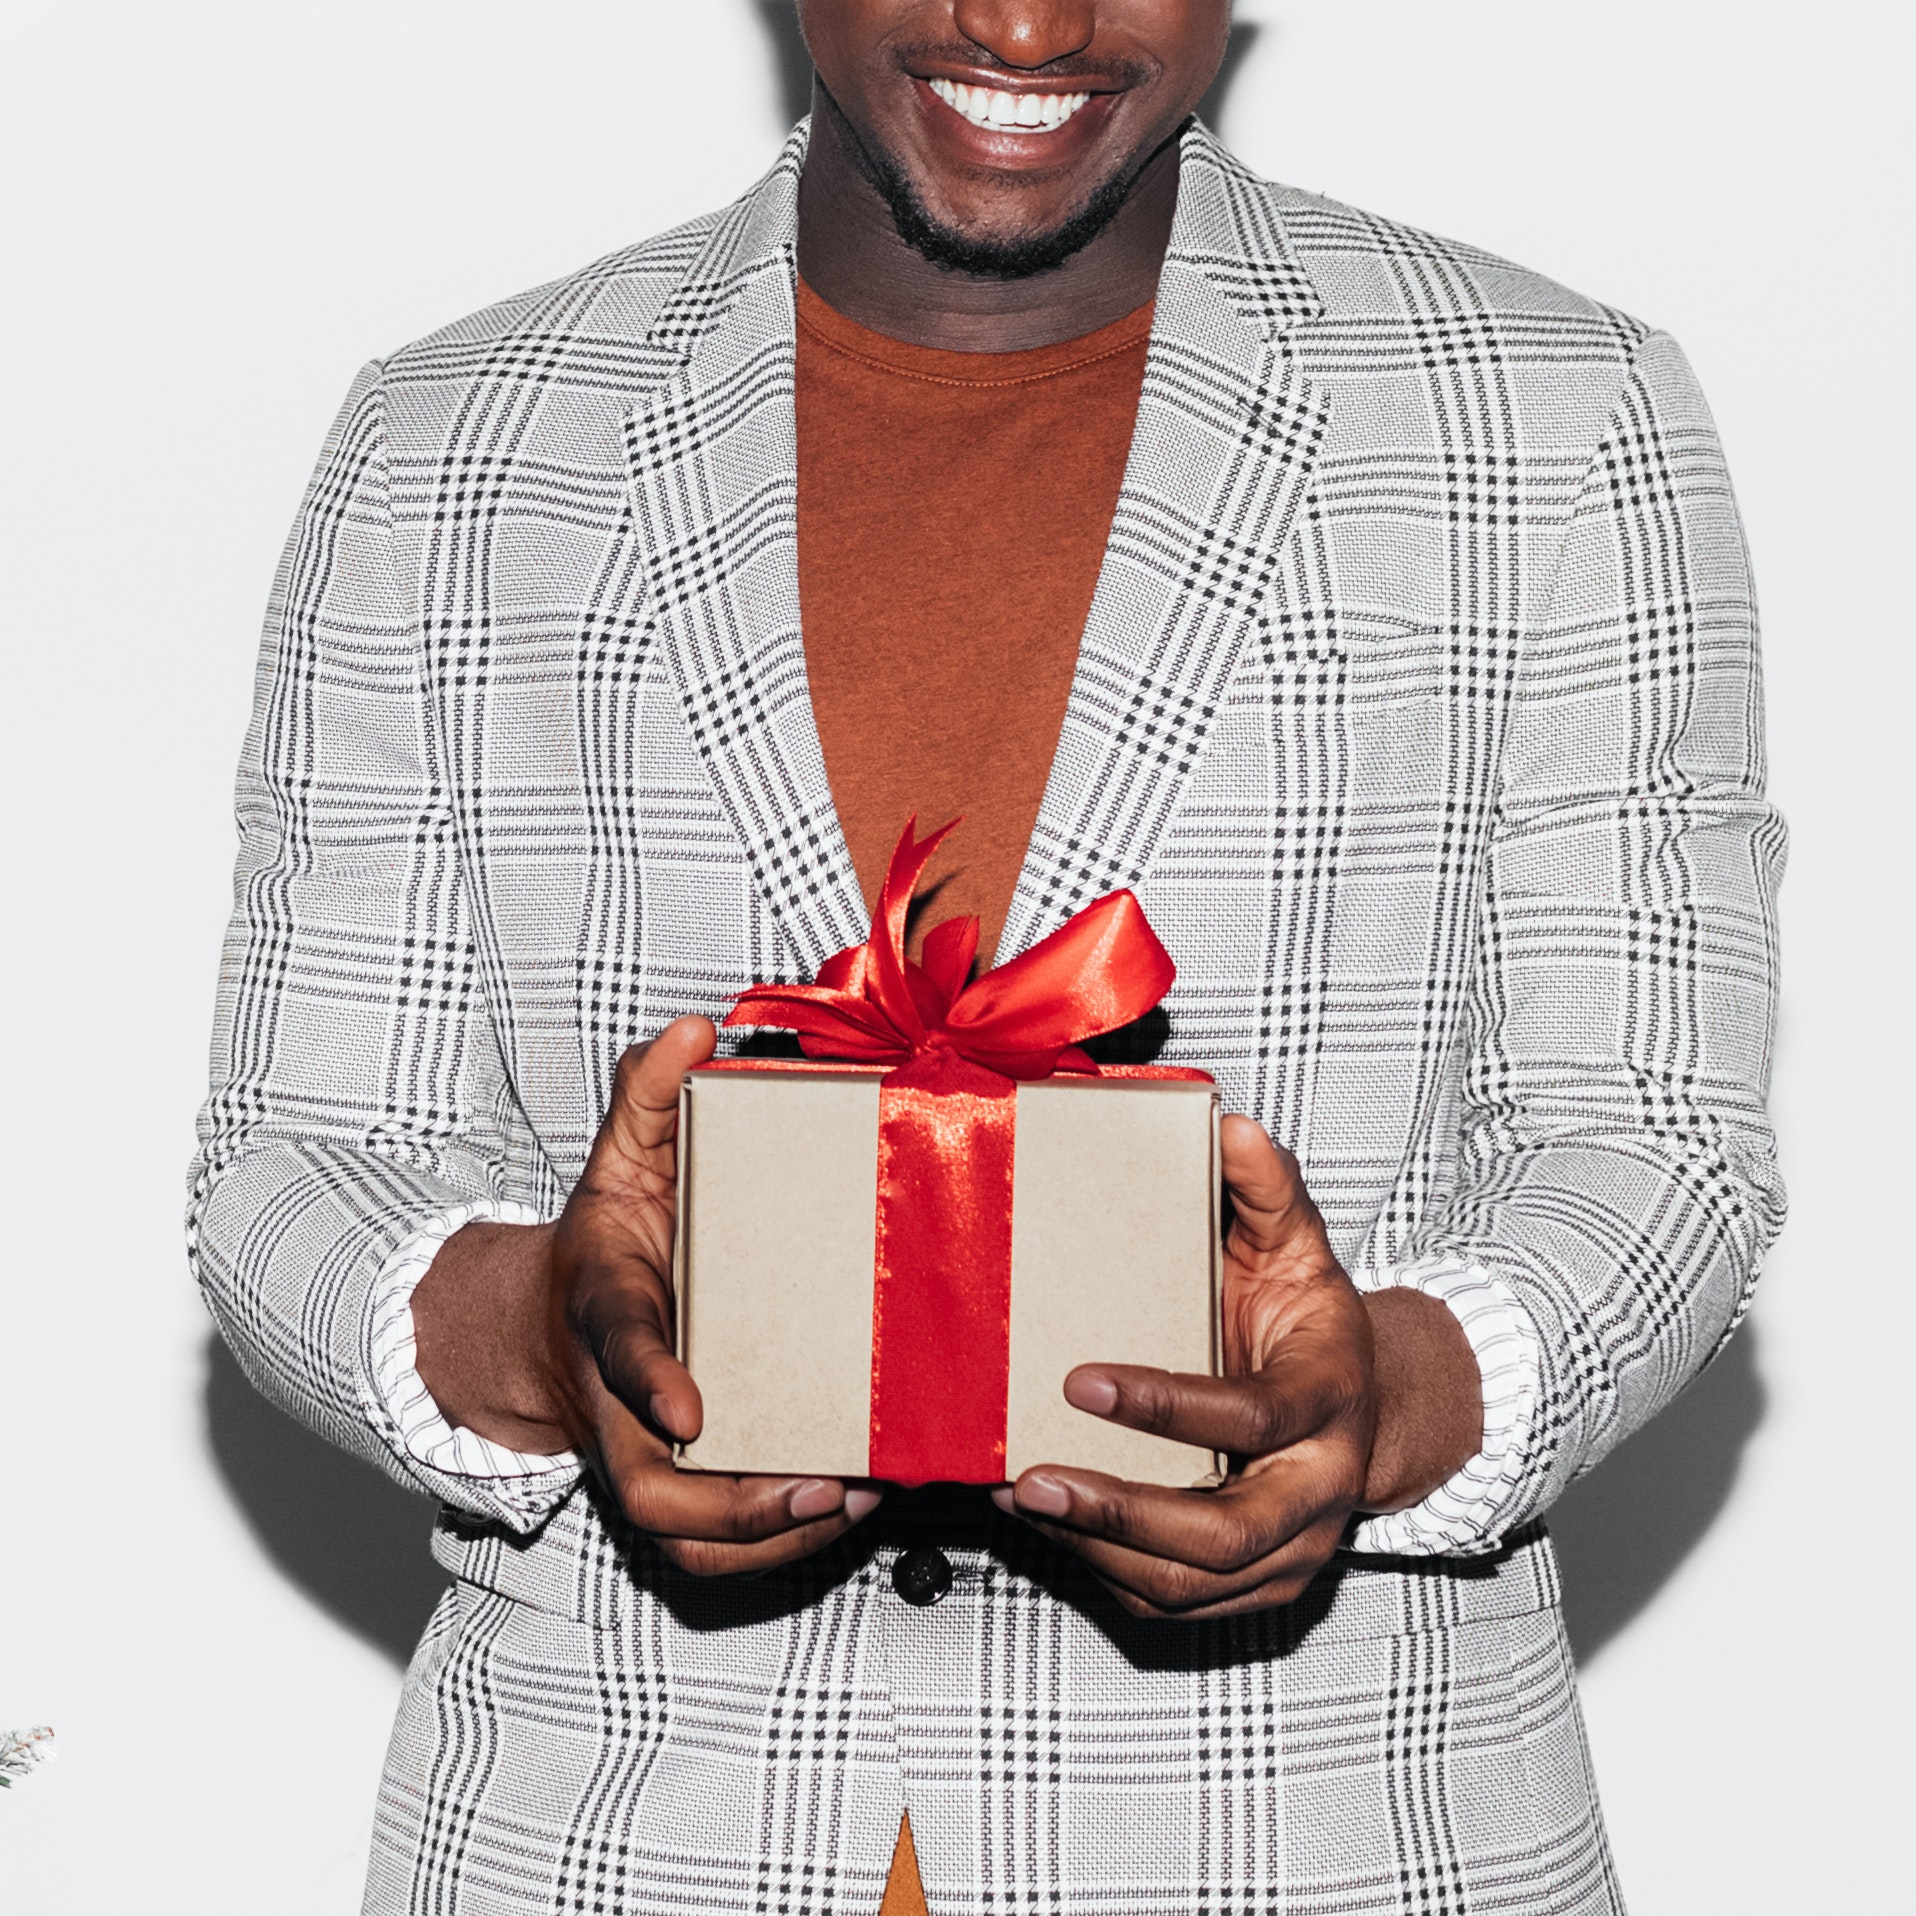 5 Treatments That Even the Pickiest Man Would Love to Receive For the Holidays